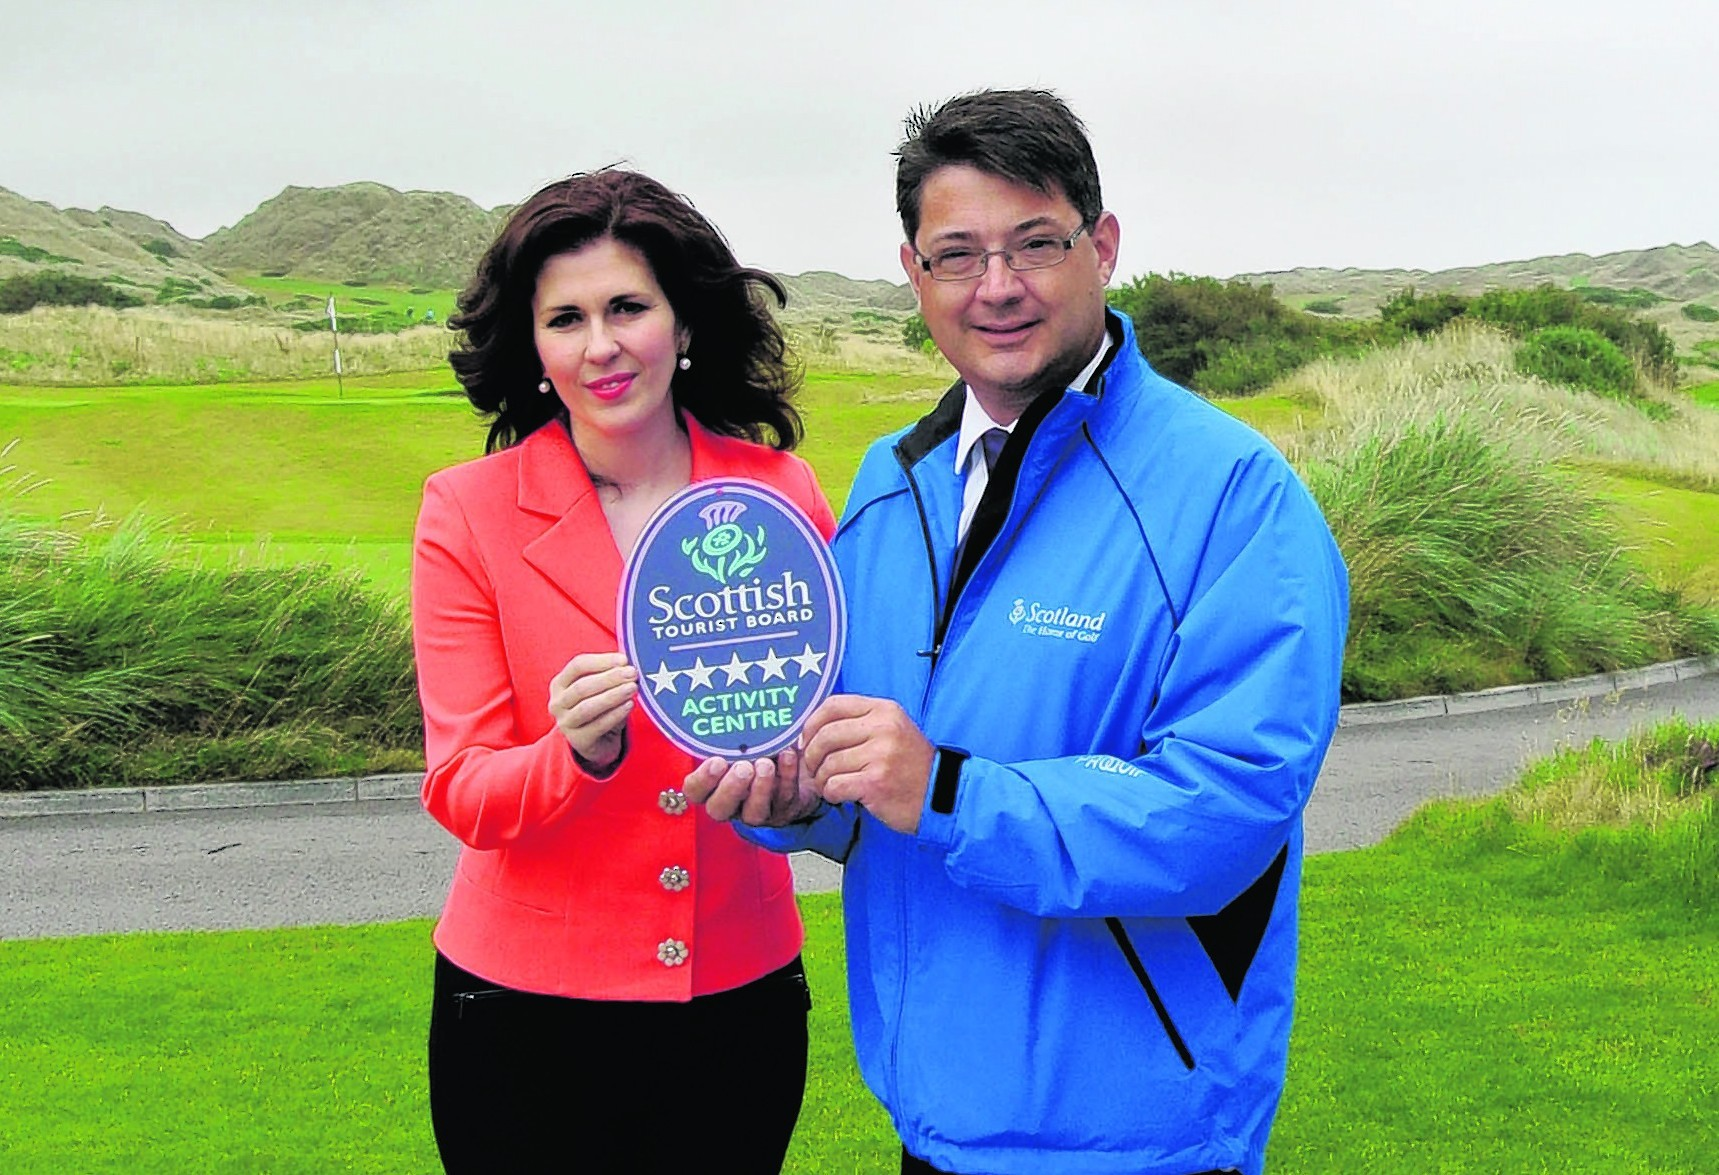 Sarah Malone, executive vice-president at Trump International Golf Links, and Philip Smith, VisitScotland regional director